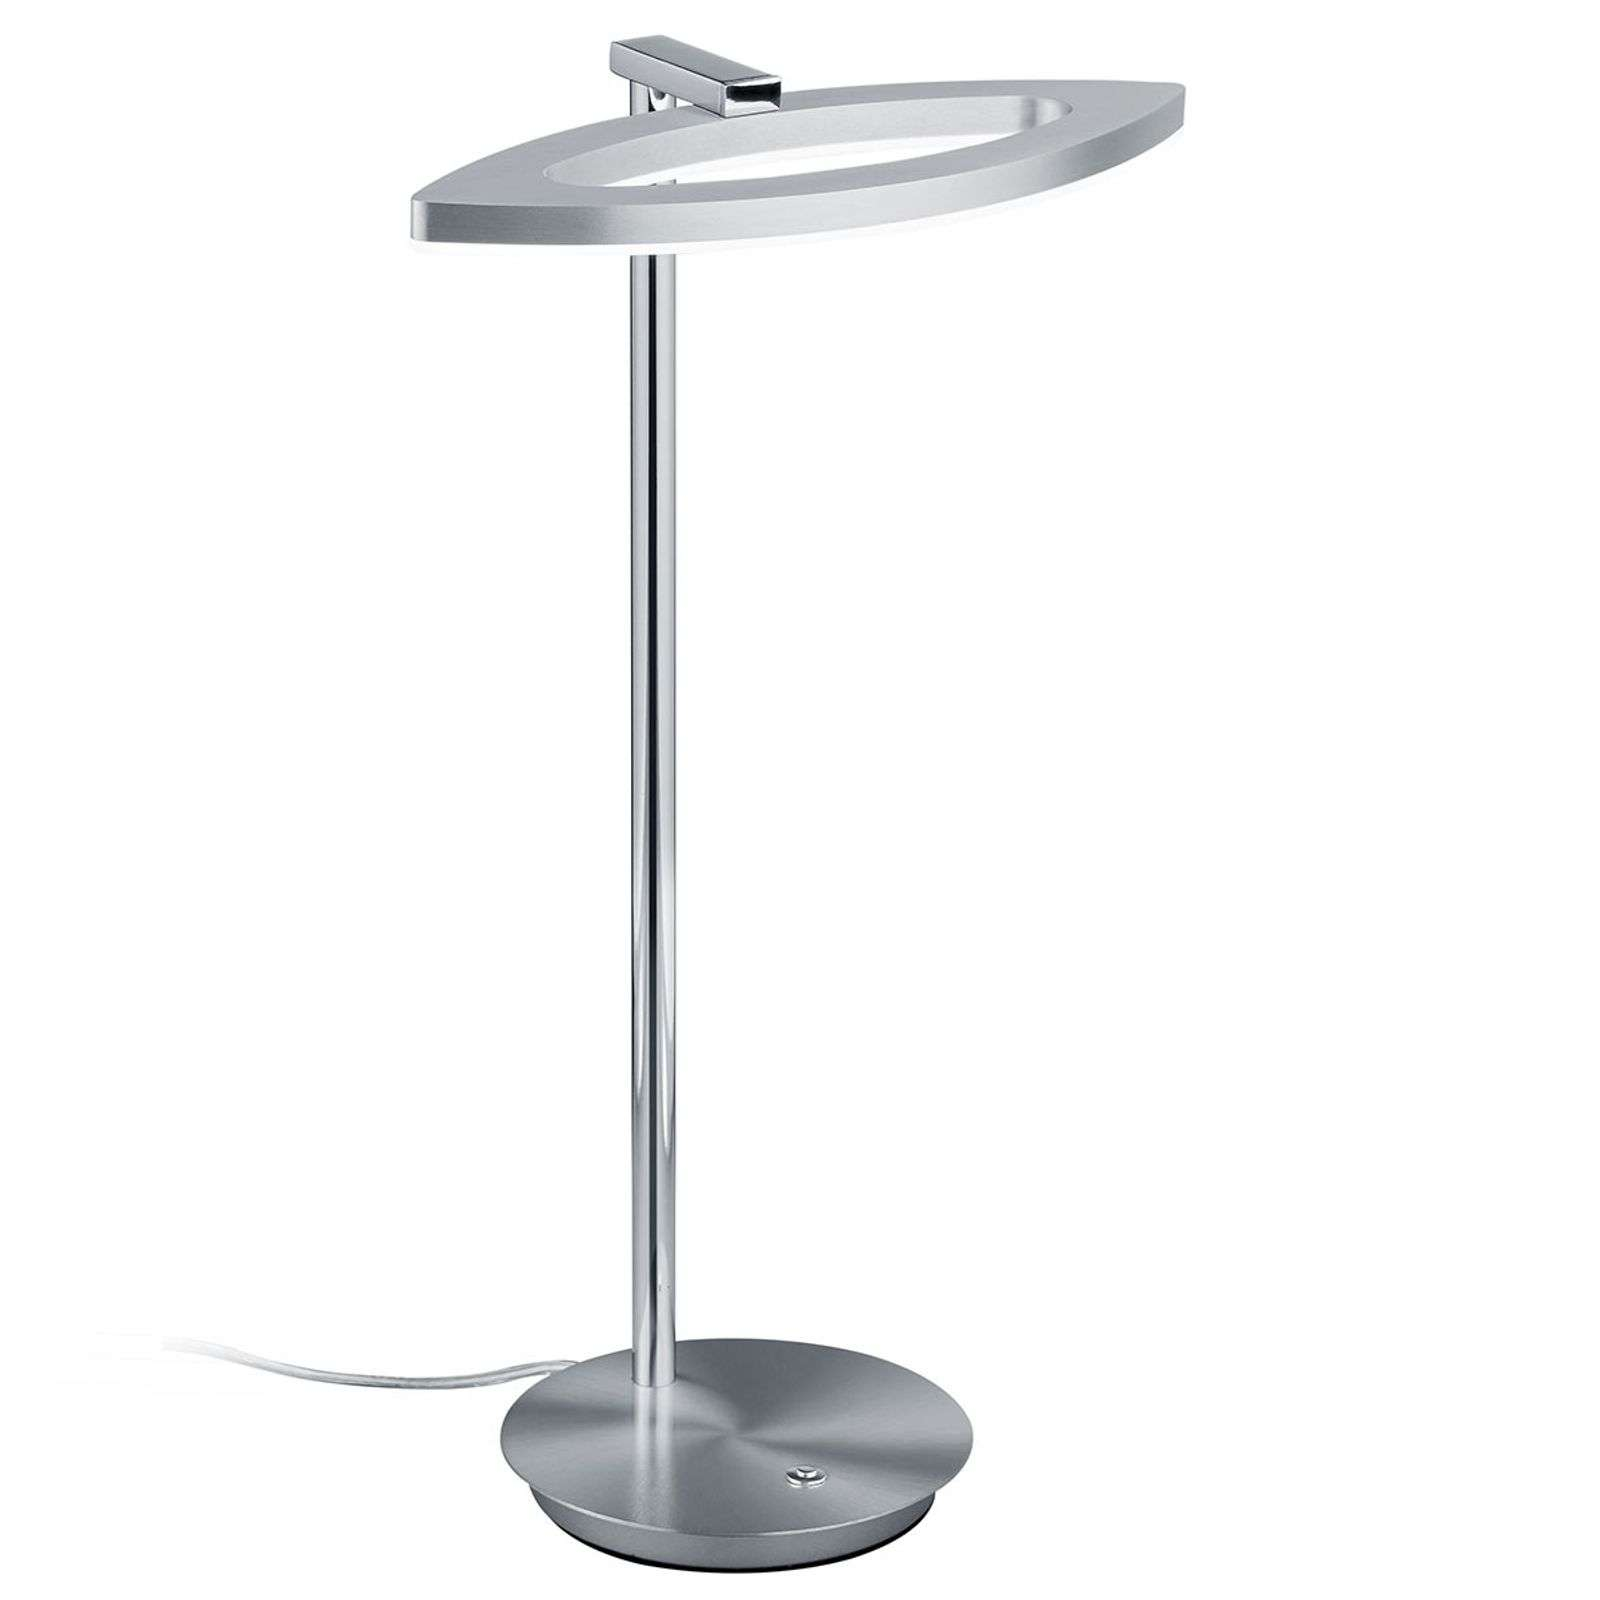 Lámpara de mesa LED River atenuable, moderna